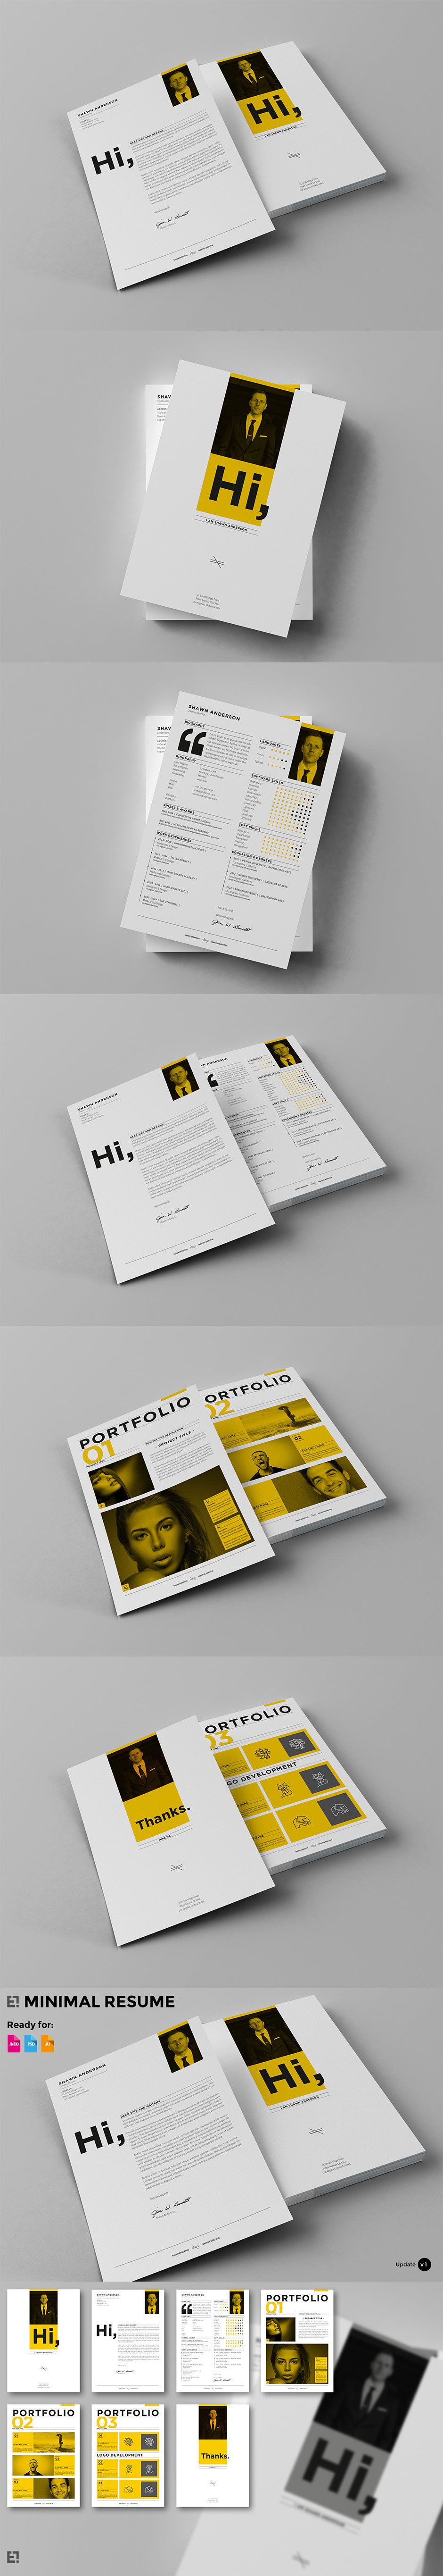 The Complete Professional Designer's Toolkit